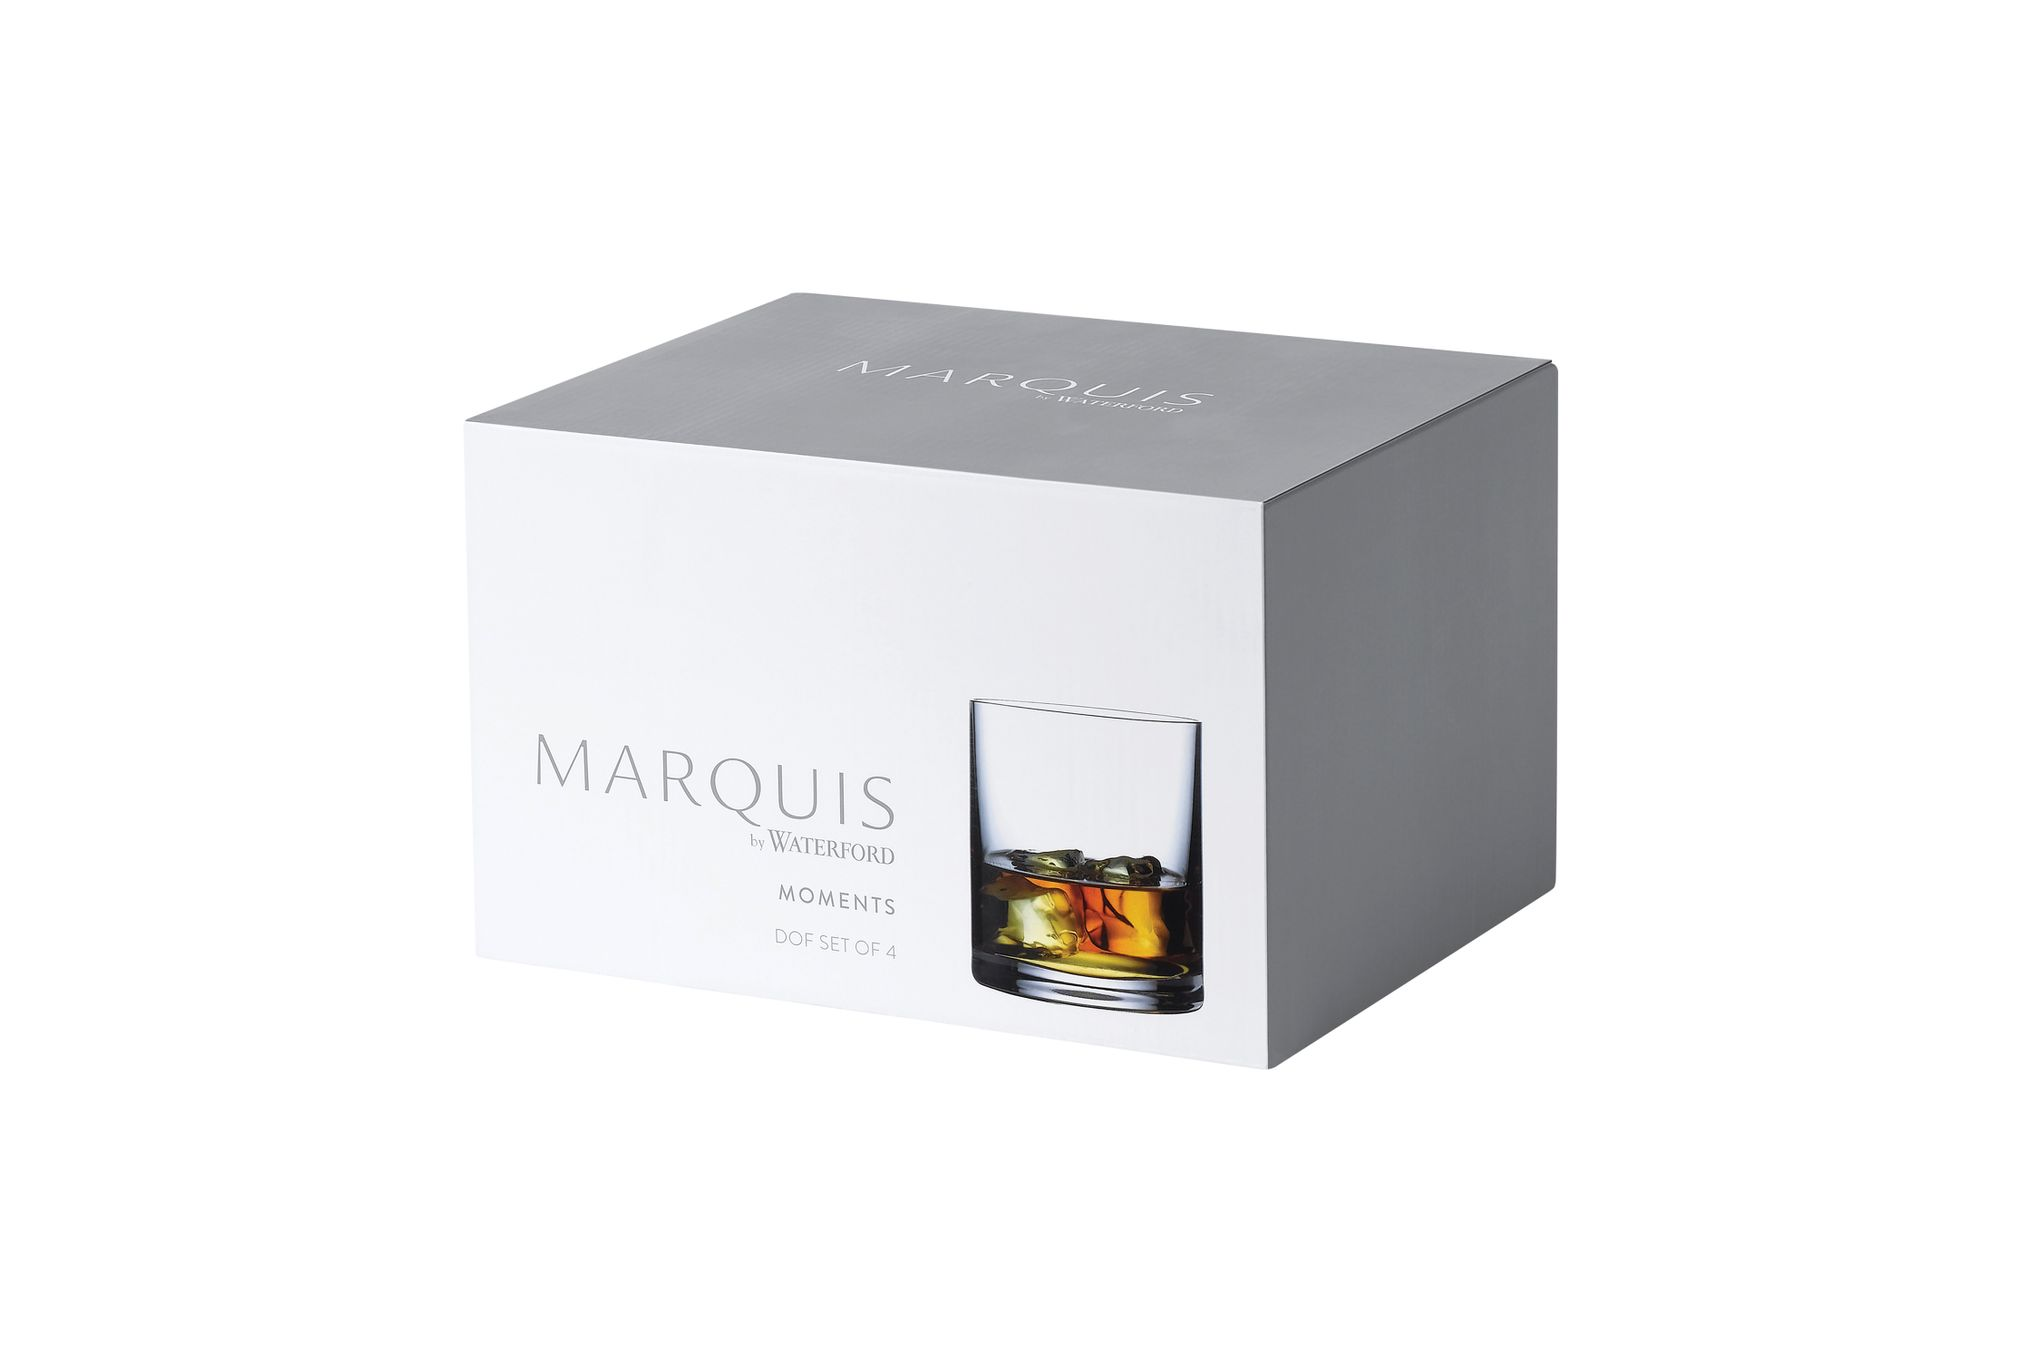 Waterford Marquis Moments Set of 4 Tumblers 390ml thumb 1